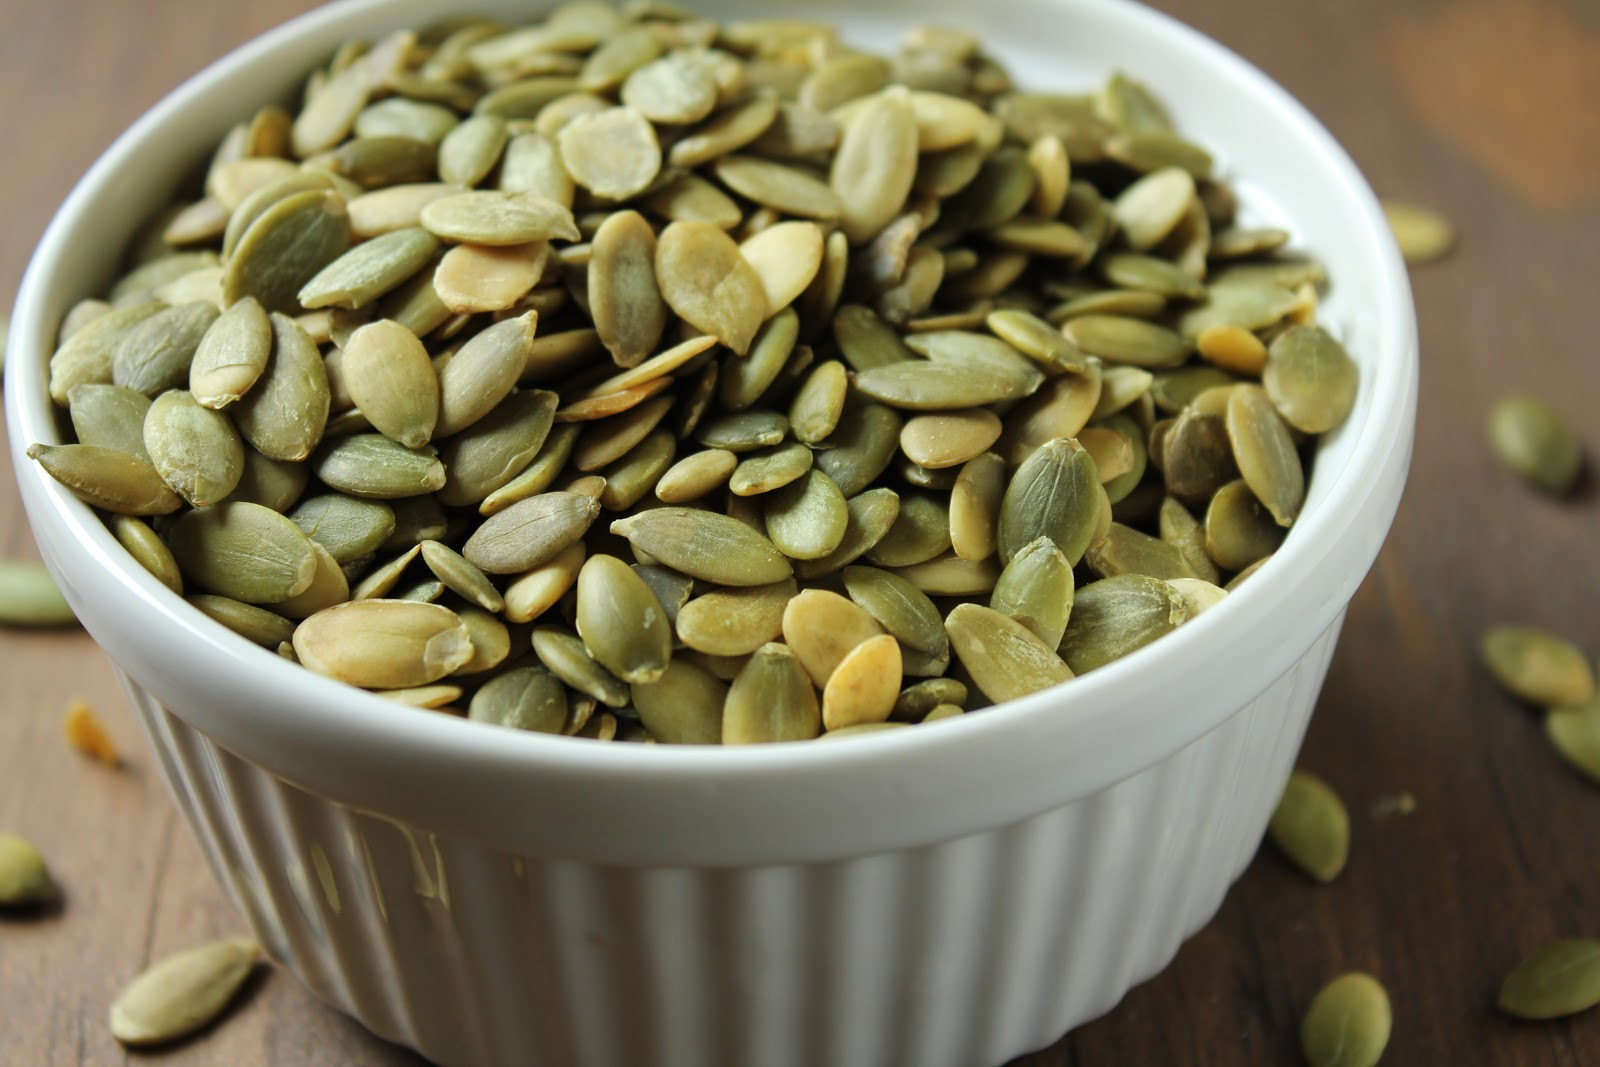 Pumpkin seeds for beauty and health